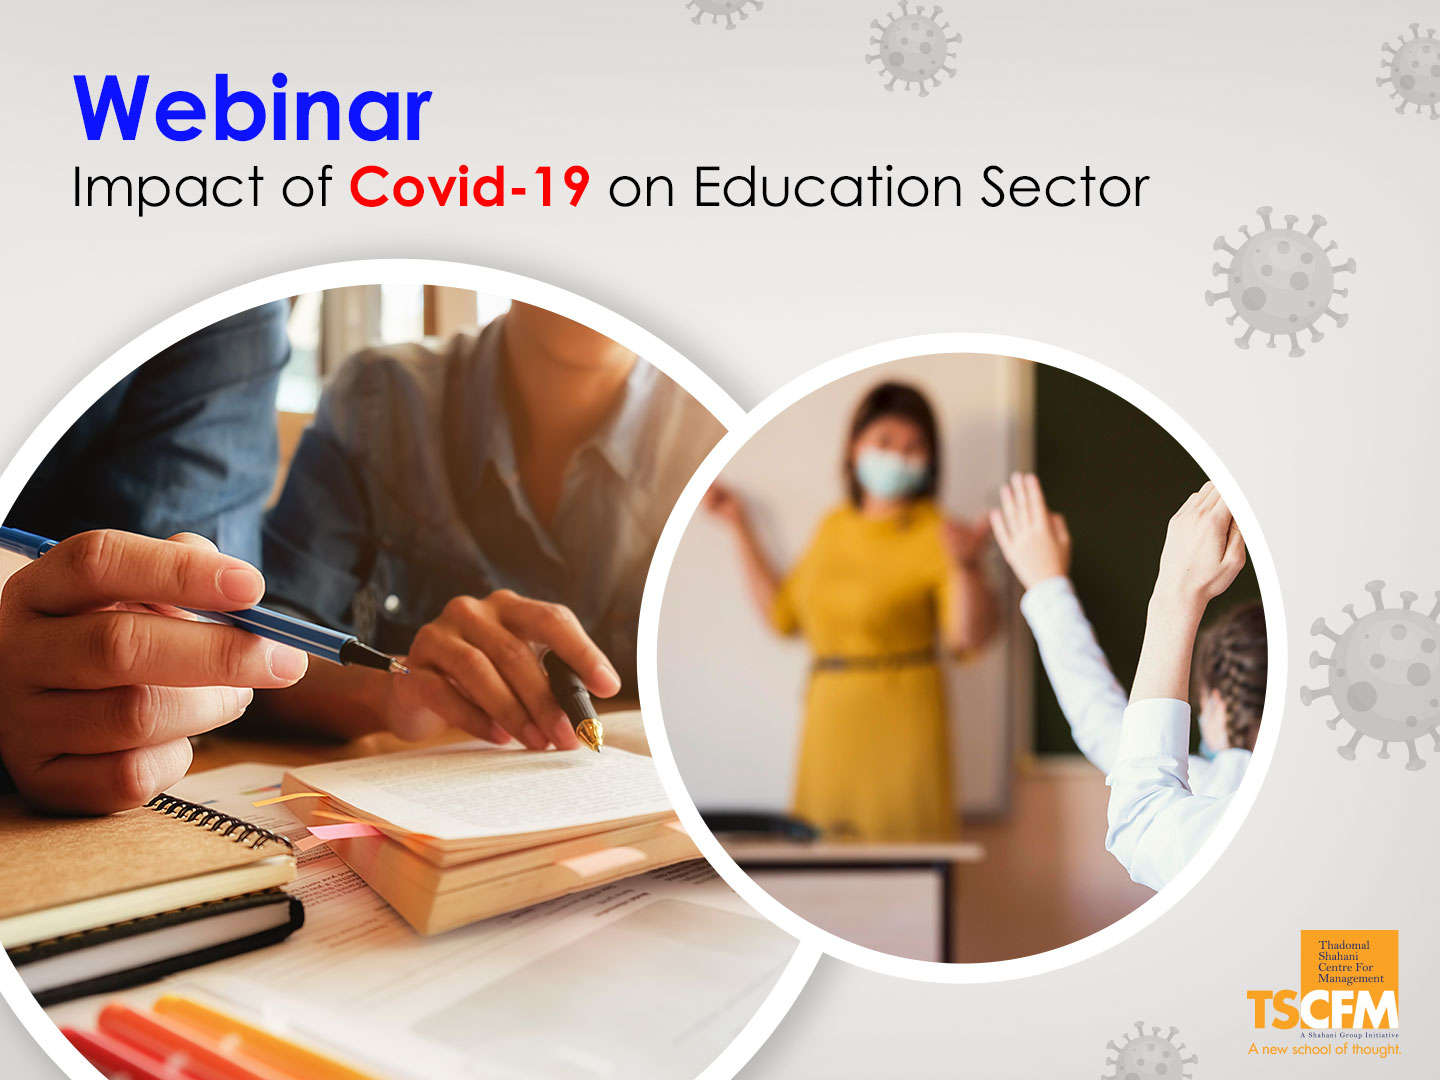 Impact of Covid-19 on Education Sector